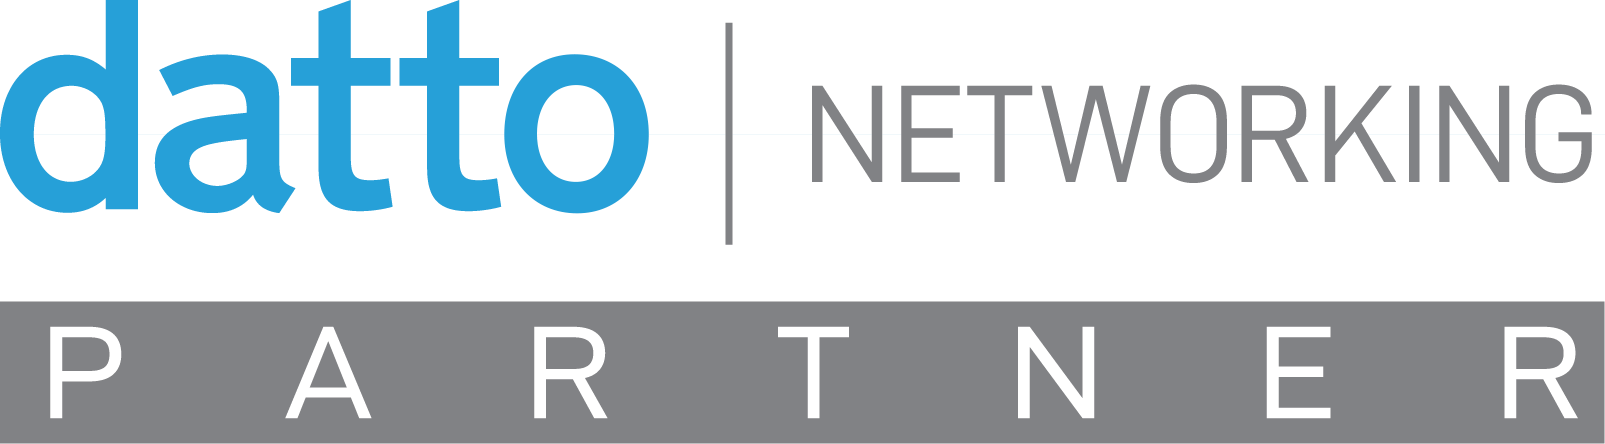 Datto_Networking_Partner_Logo.png